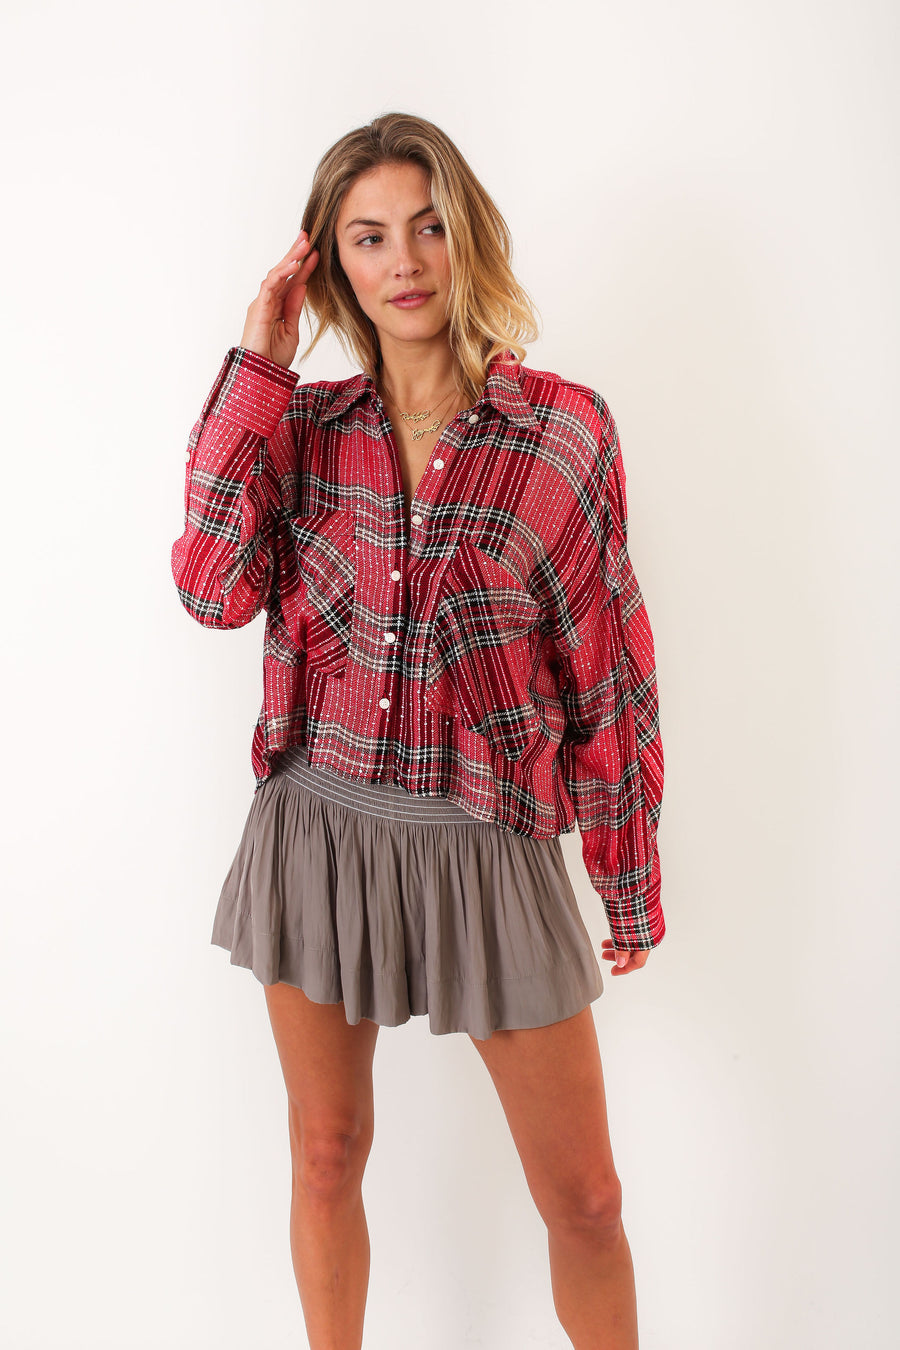 LYLE TOP HOLLY BERRY PLAID